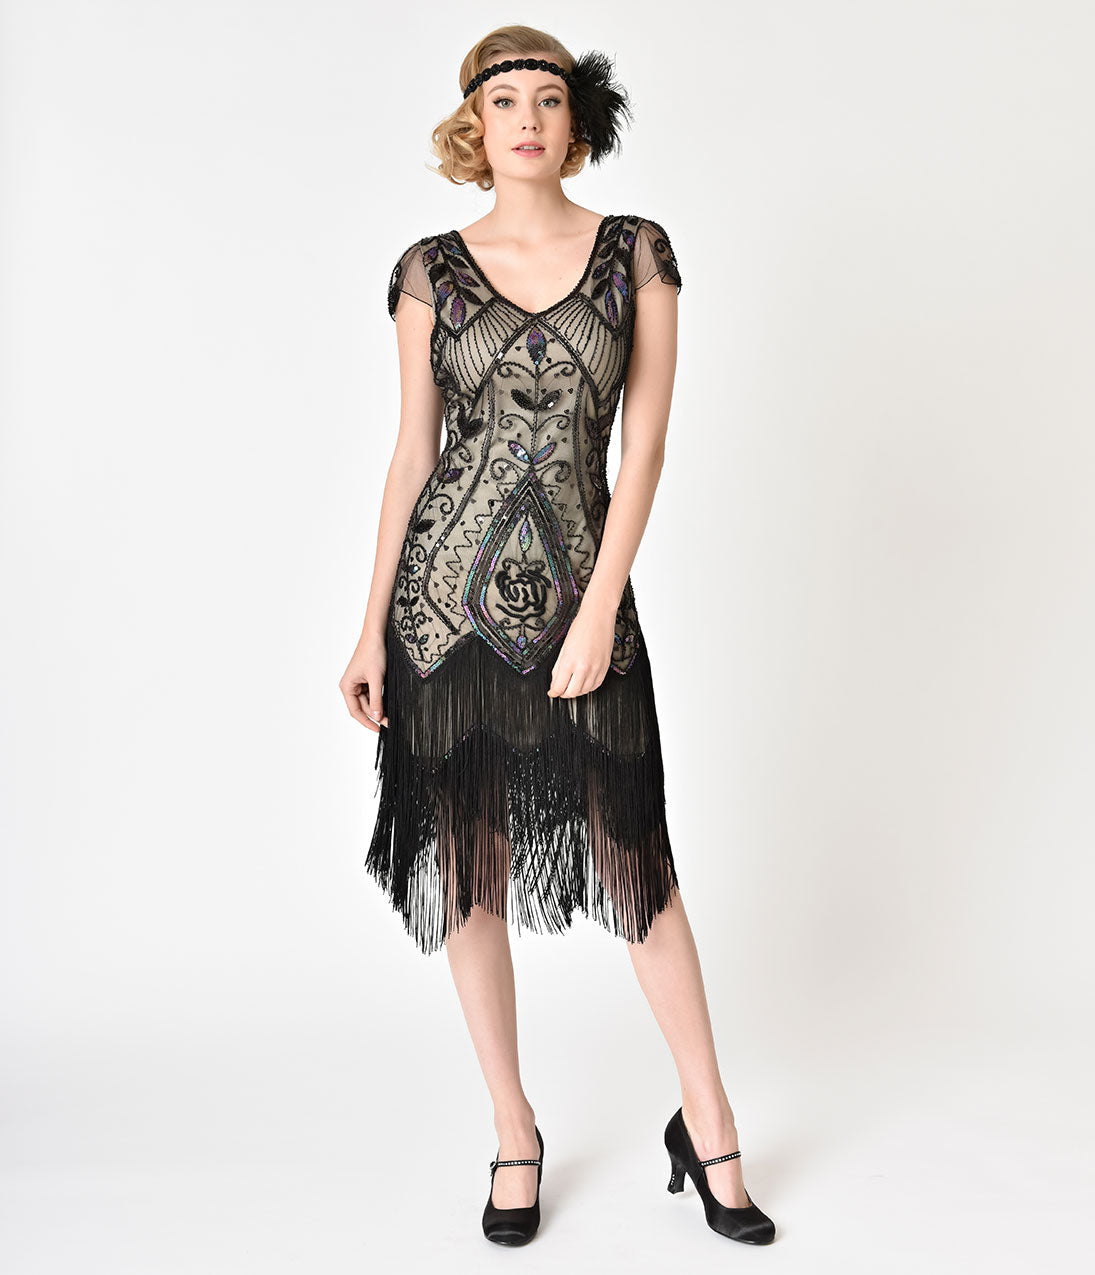 Gangster Costumes & Outfits | Women's and Men's Unique Vintage 1920S Black Rose  Champagne Noele Fringe Flapper Dress $74.00 AT vintagedancer.com